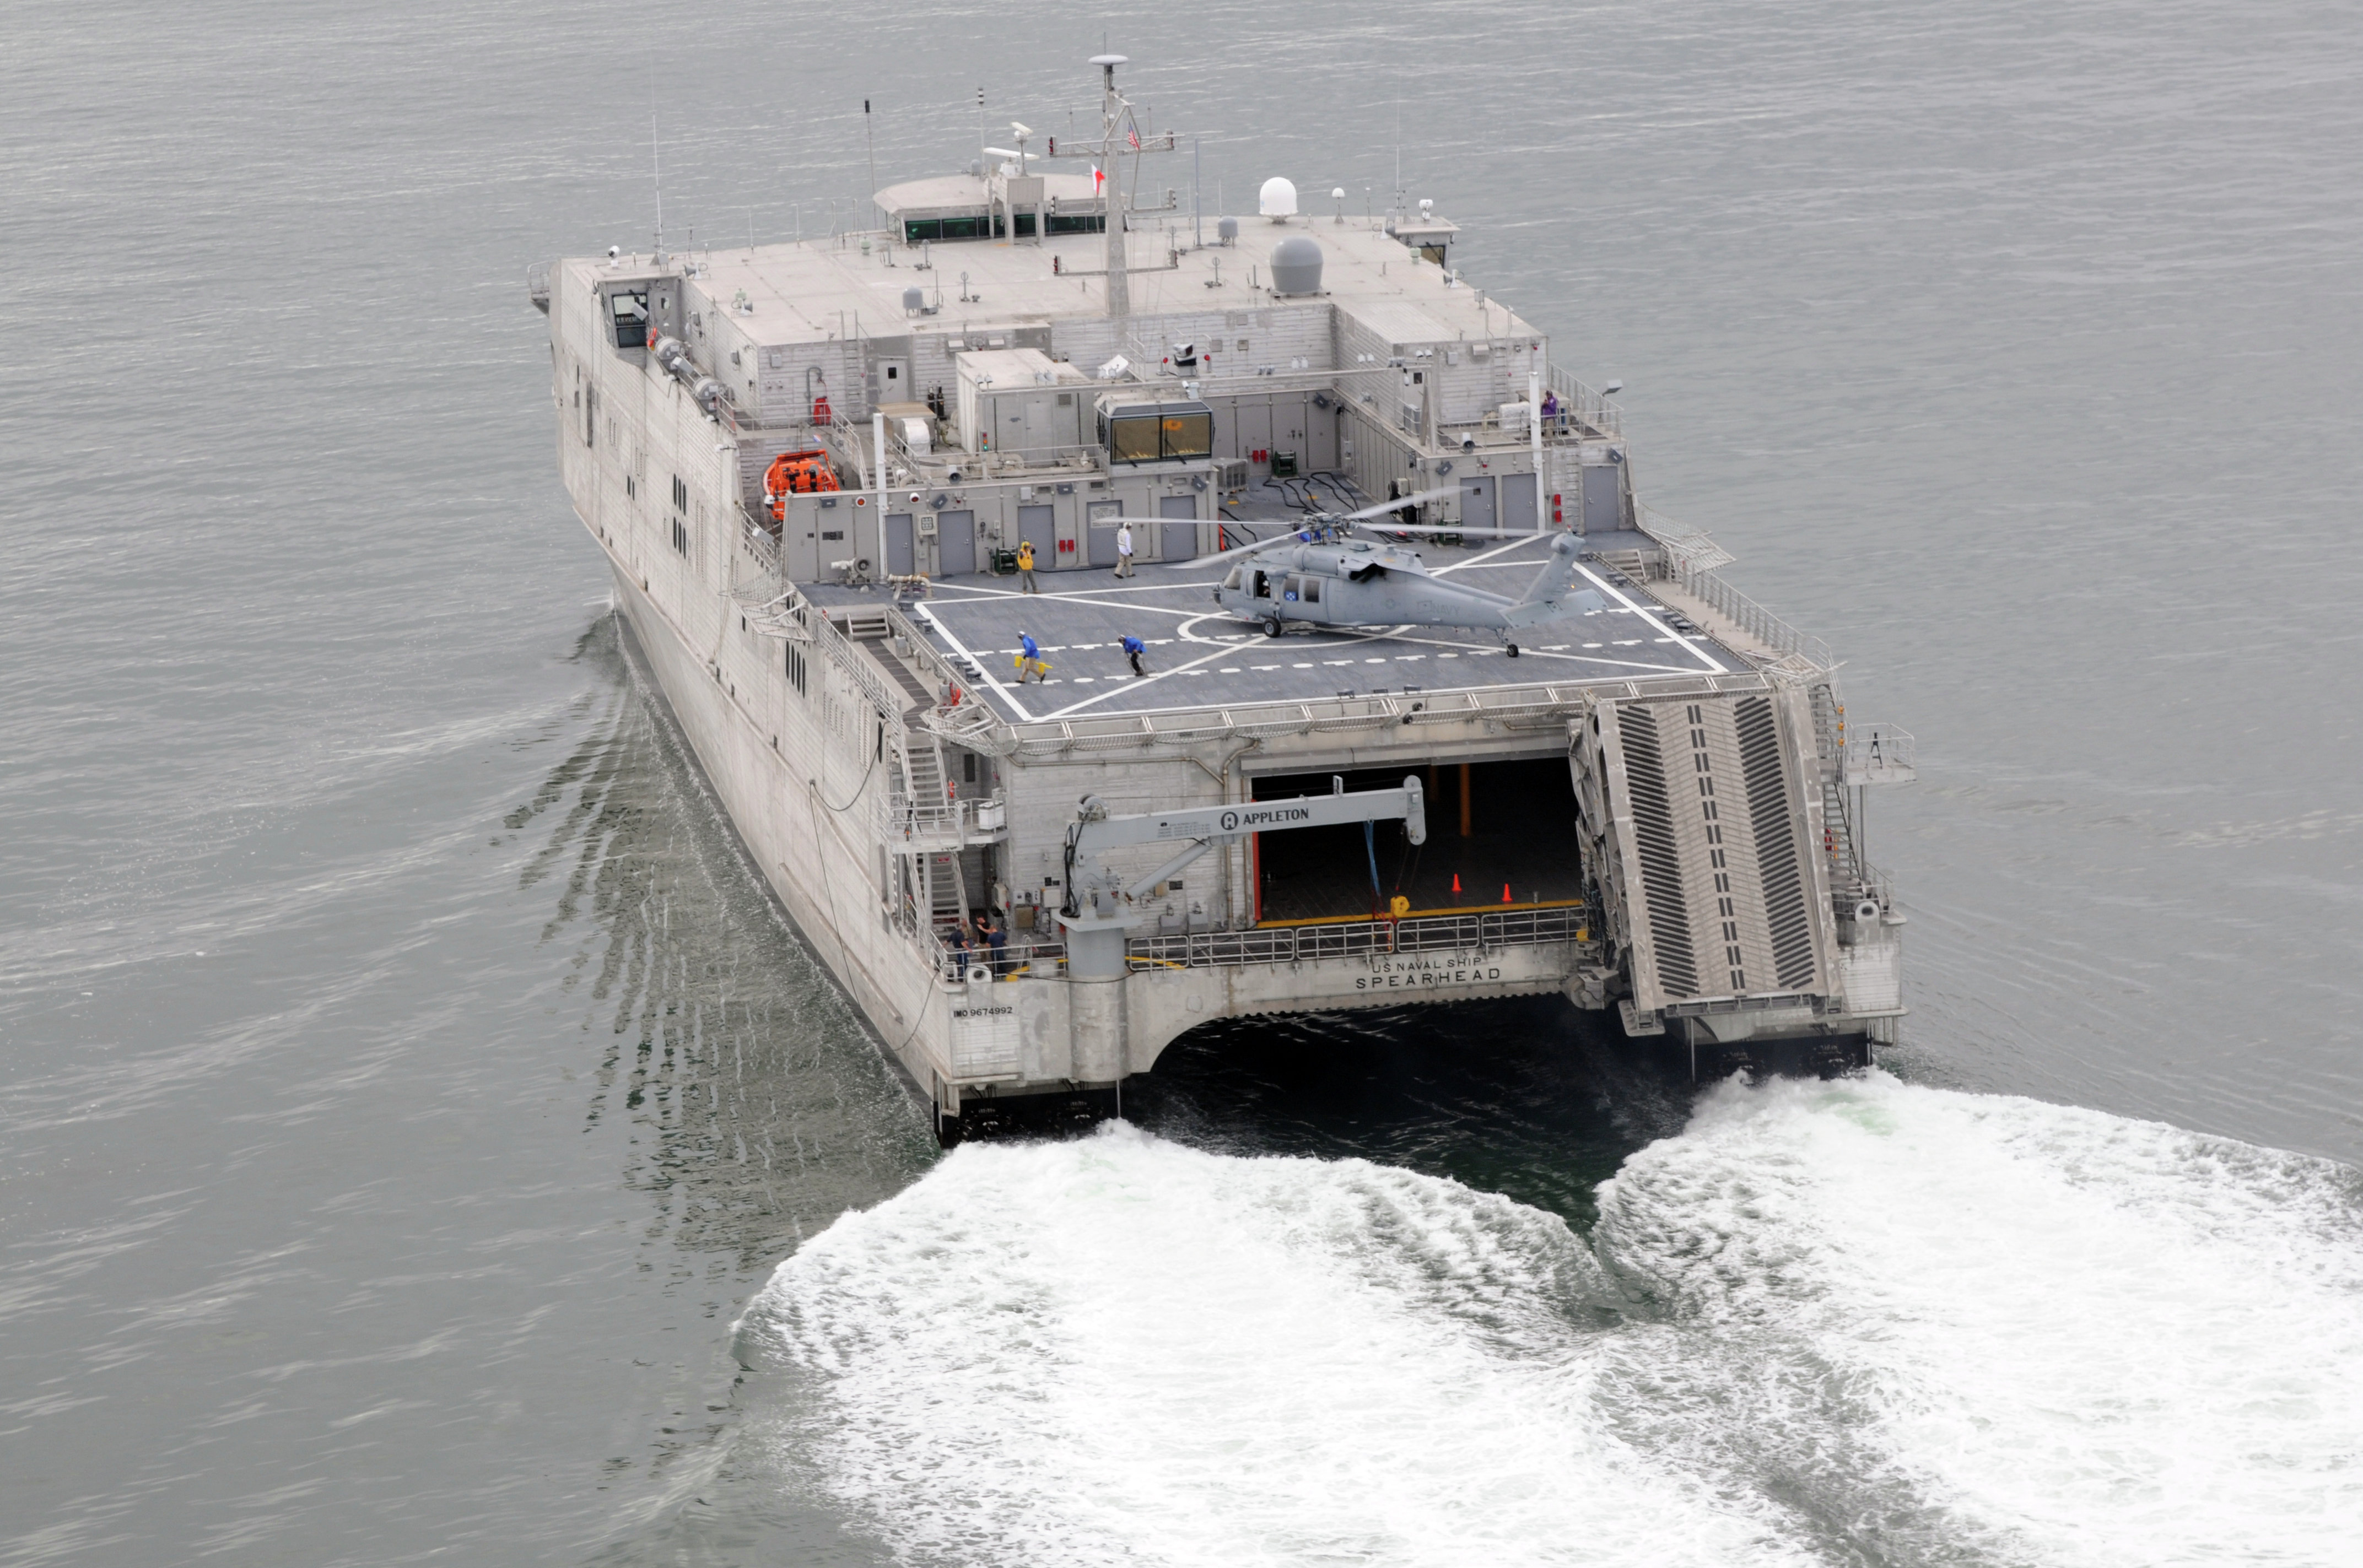 The Spearhead conducts high-speed trials at sea.